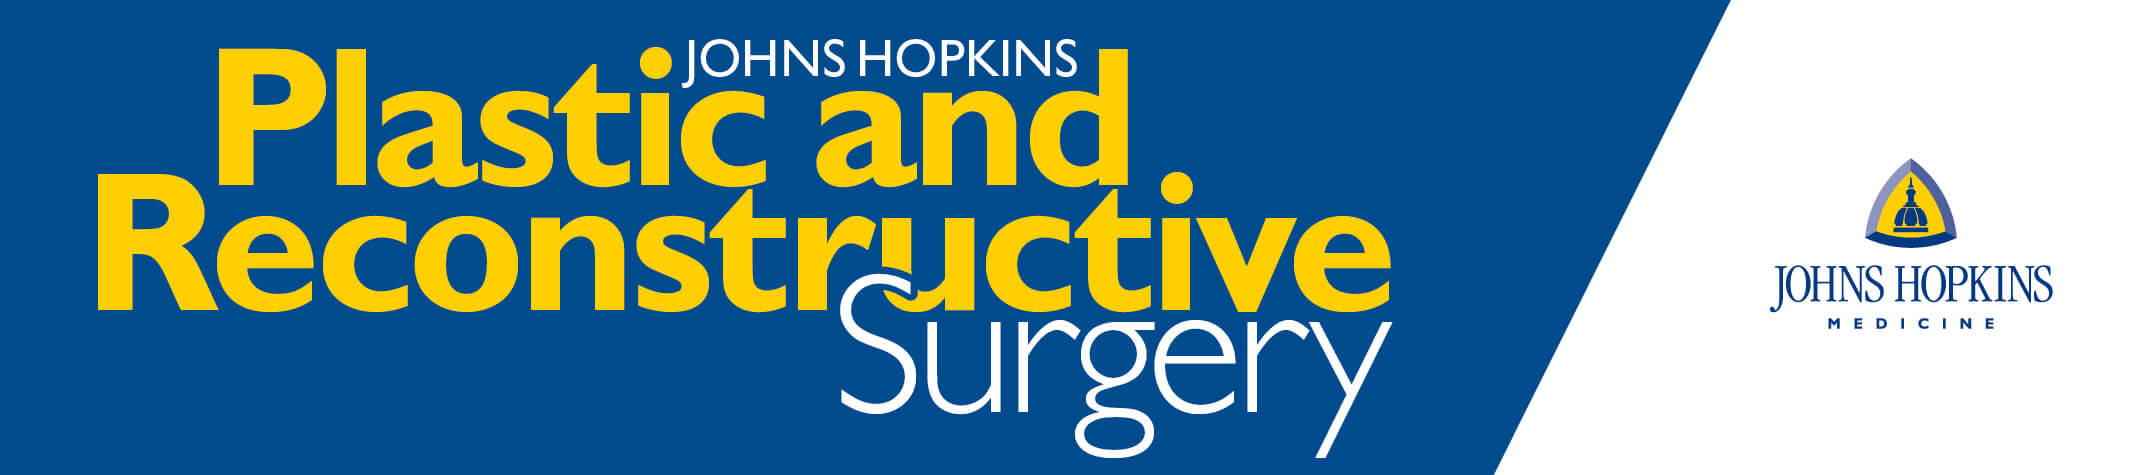 johns hopkins plastic and reconstructive surgery logo